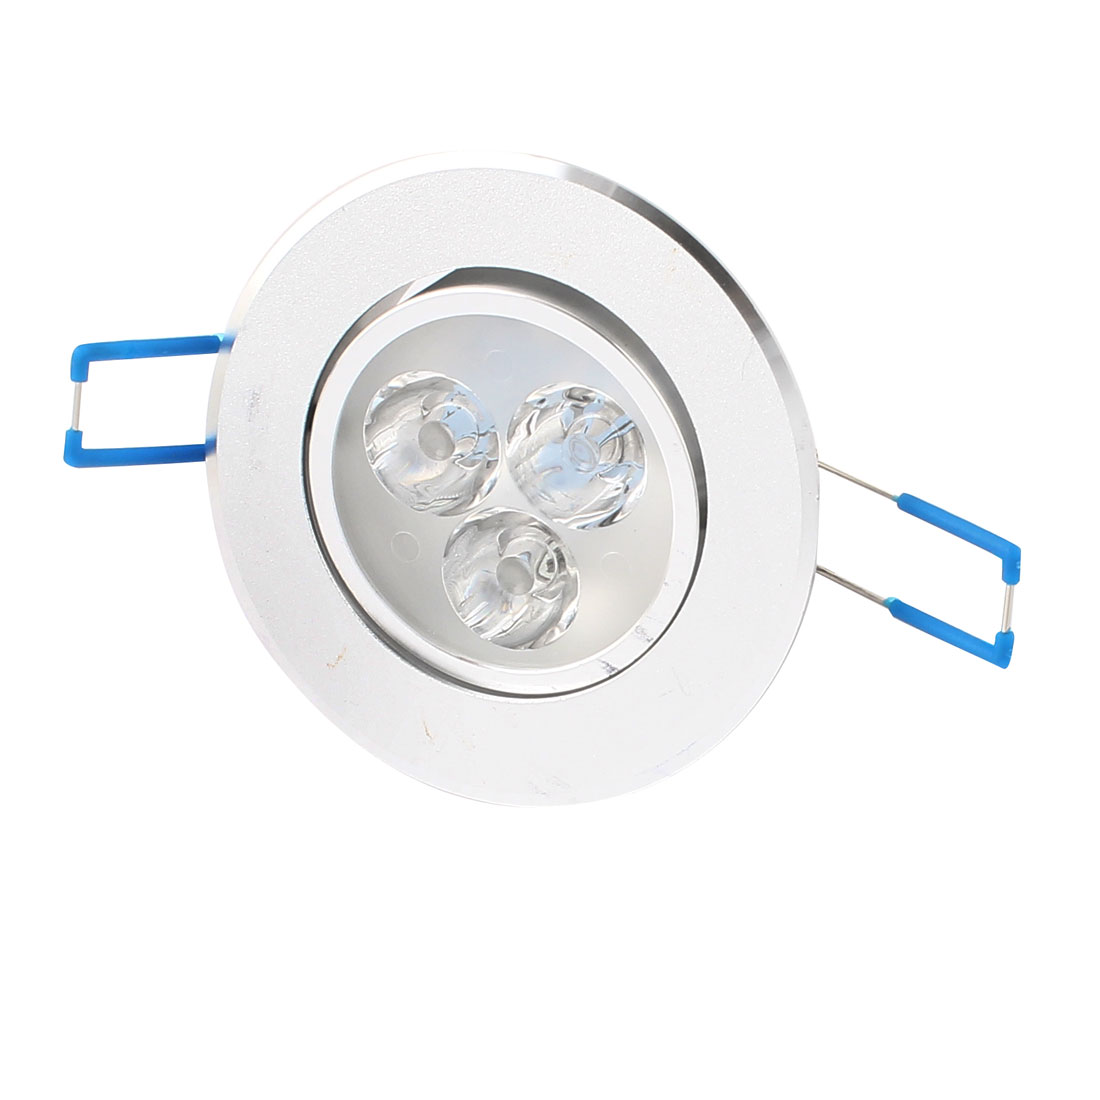 3W Silver Tone 85mm Dia Ceiling Down Light Lamp Shell 3 LED Aluminum Heatsink